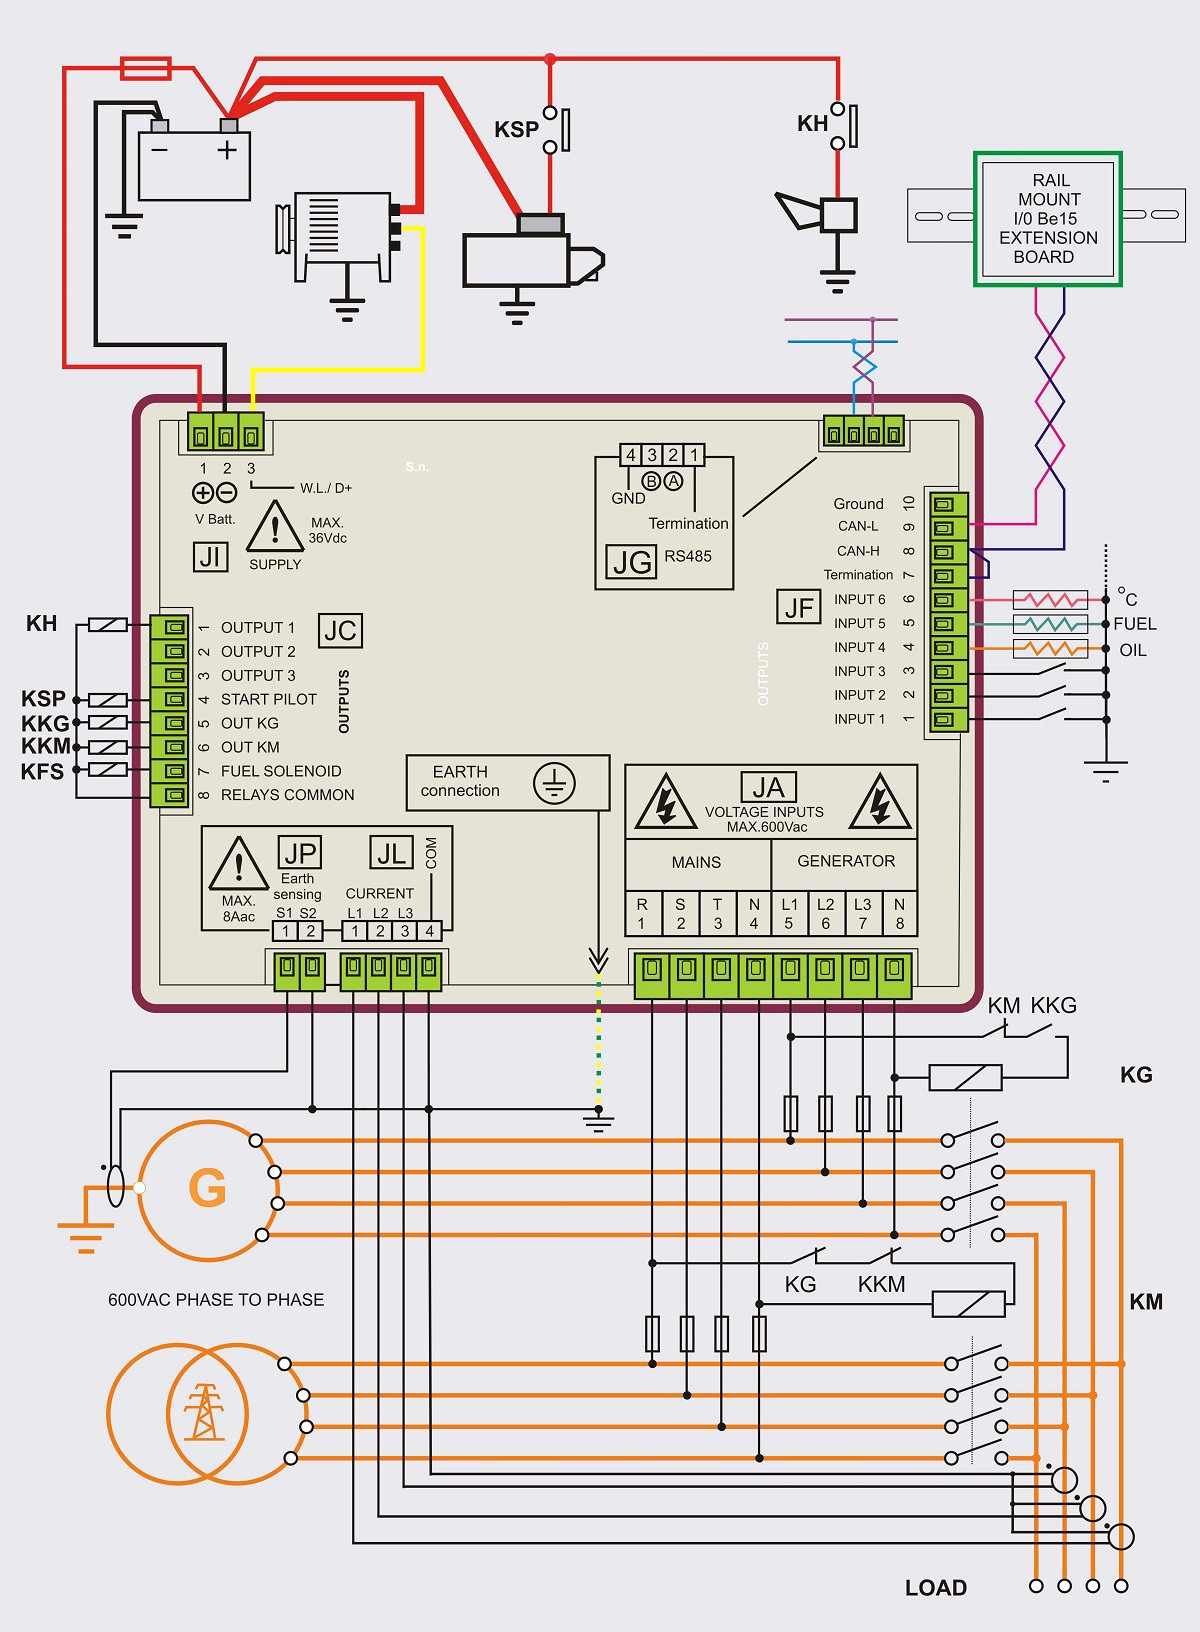 Generac manual transfer switch wiring diagram gallery wiring generac manual transfer switch wiring diagram download generac 100 amp automatic transfer switch wiring diagram swarovskicordoba Choice Image